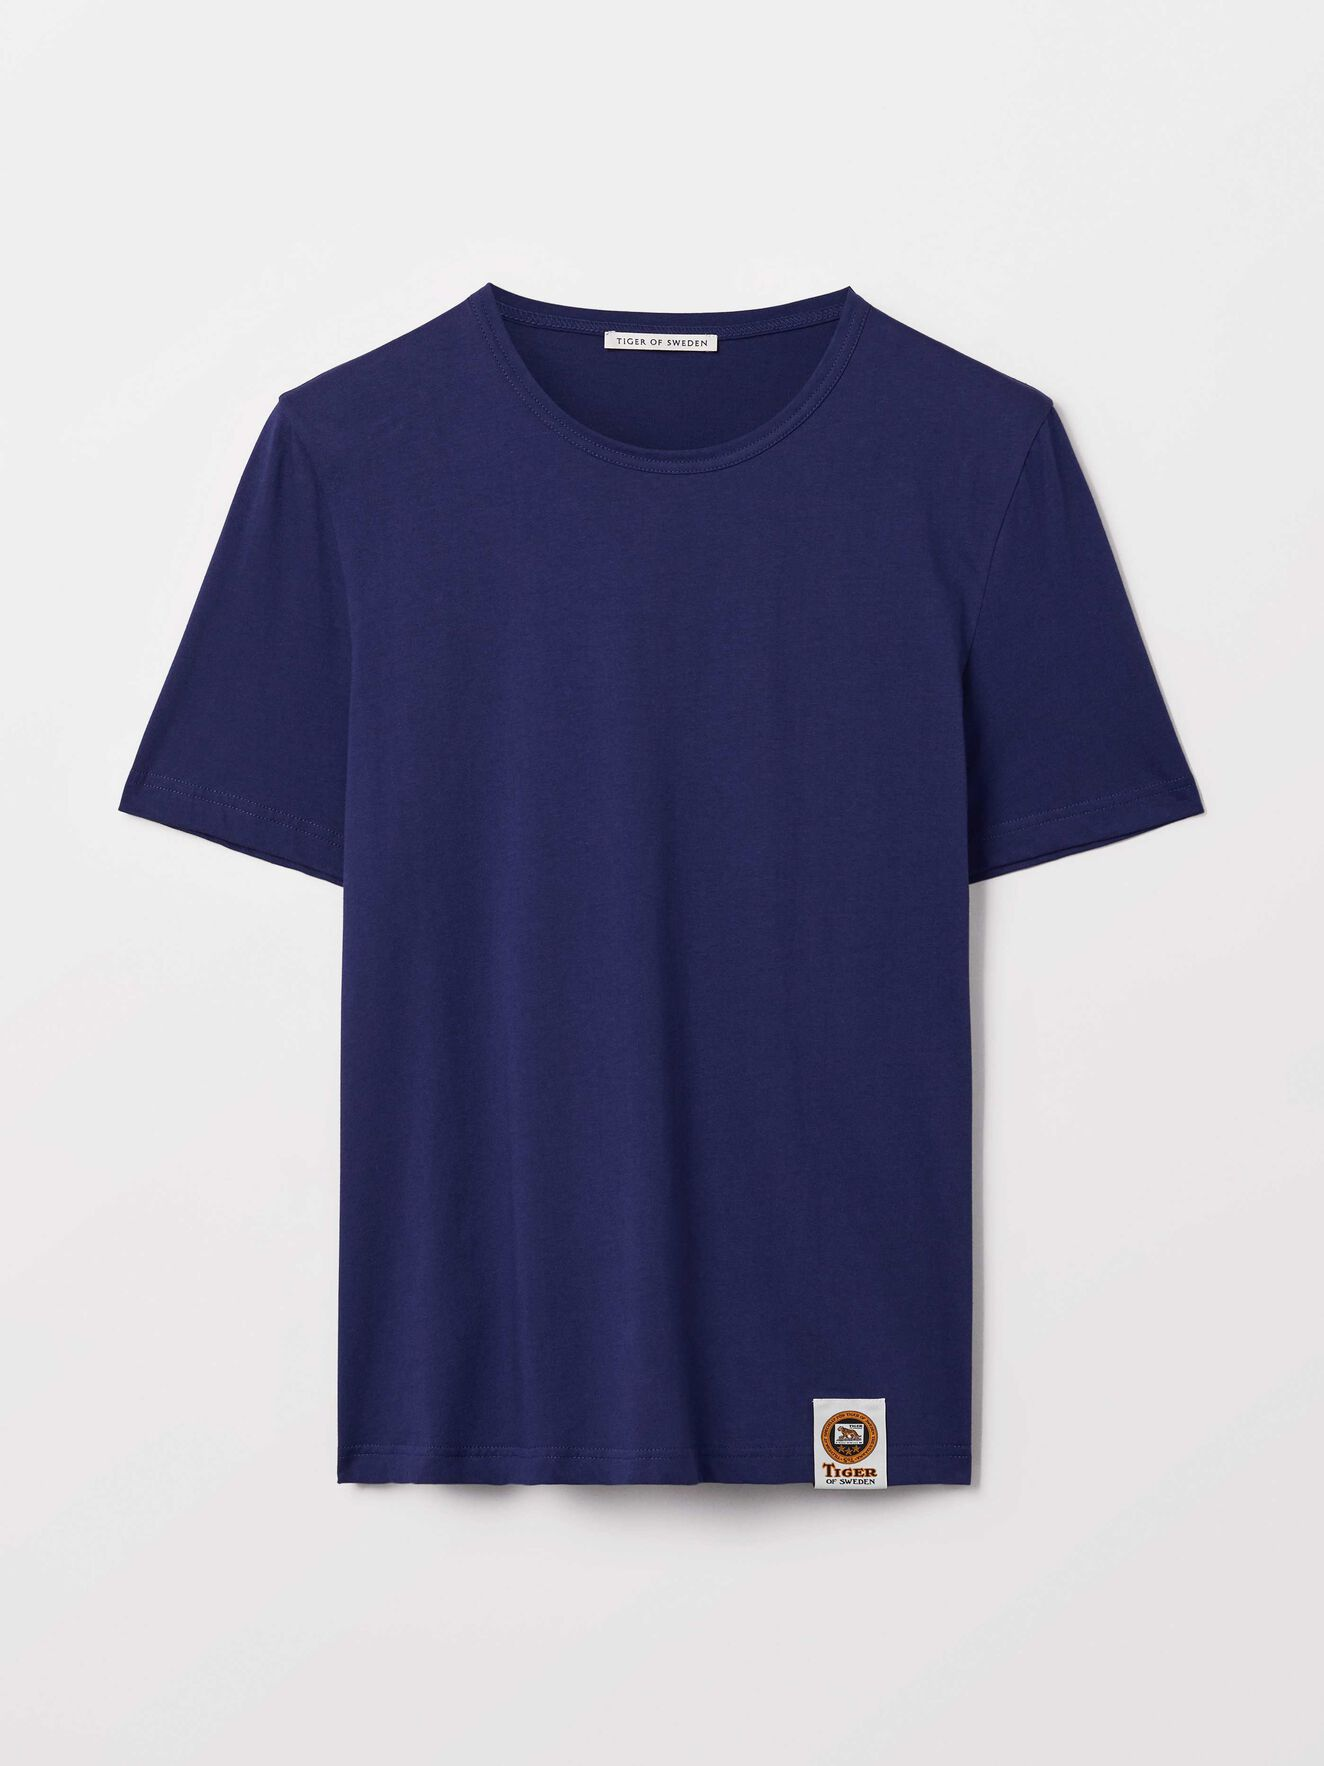 Darian T-Shirt in Deep Ocean Blue from Tiger of Sweden